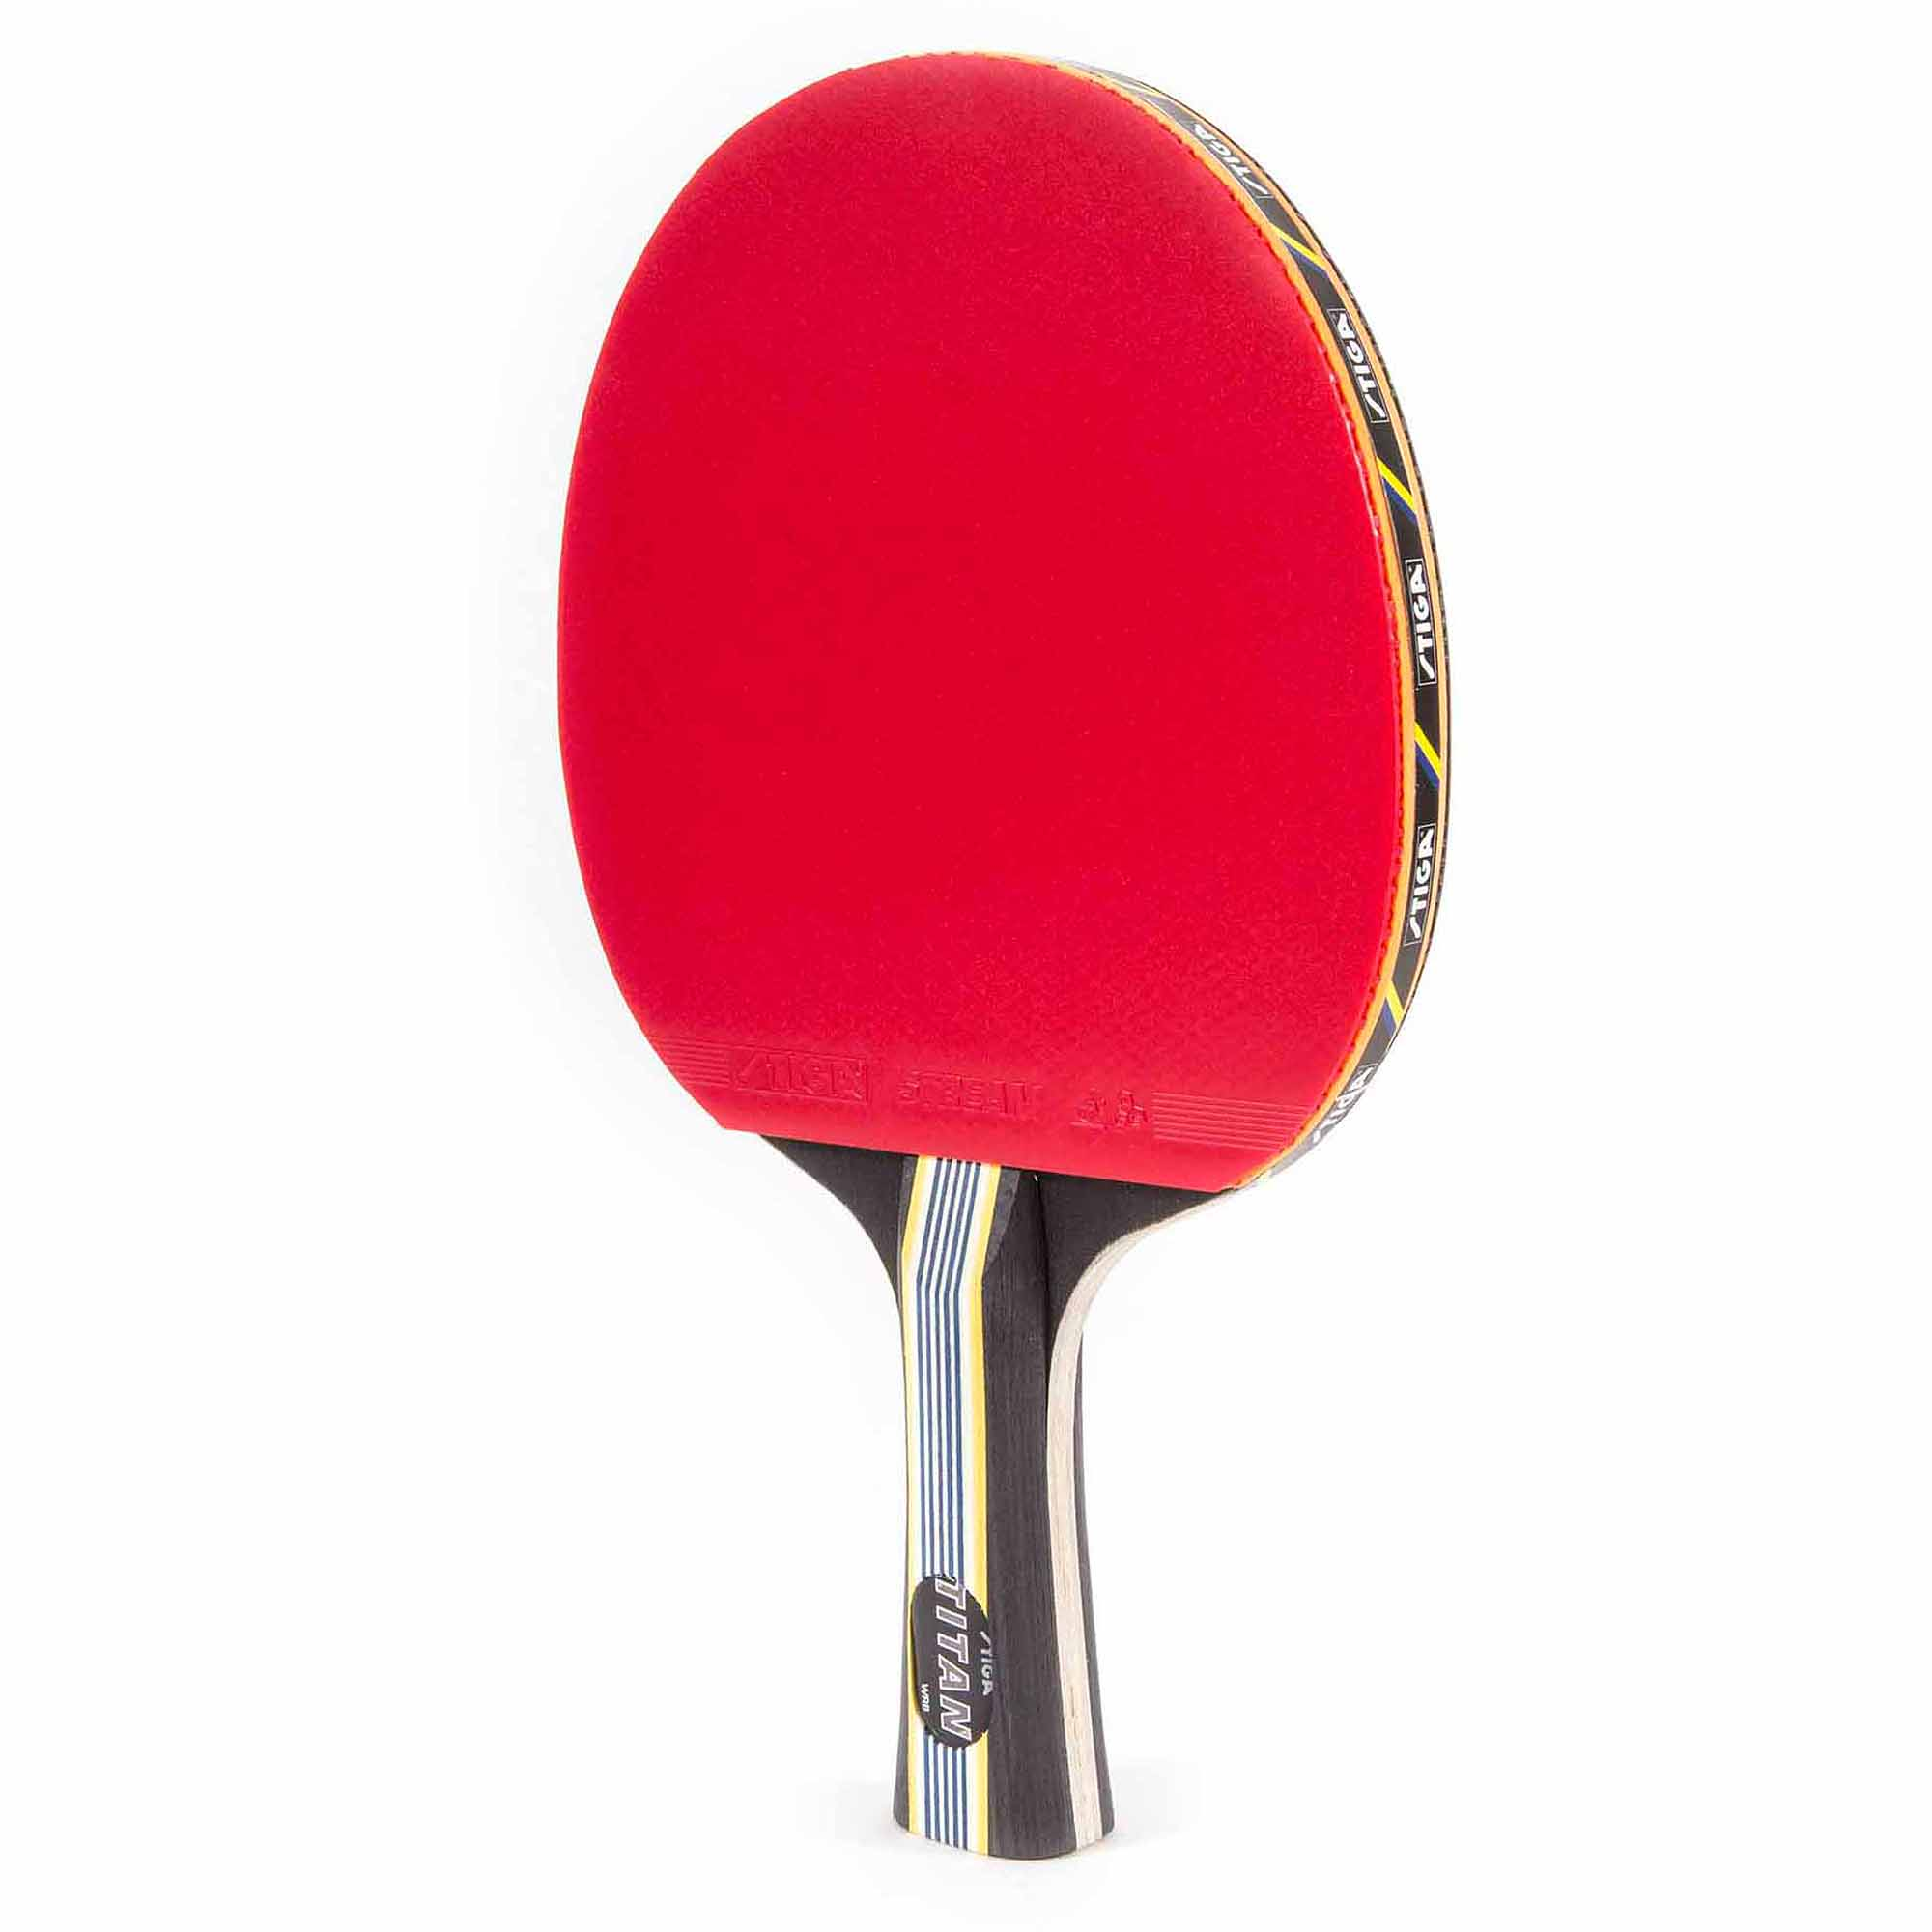 Stiga Table Tennis Racket Ratings Brokeasshome Com